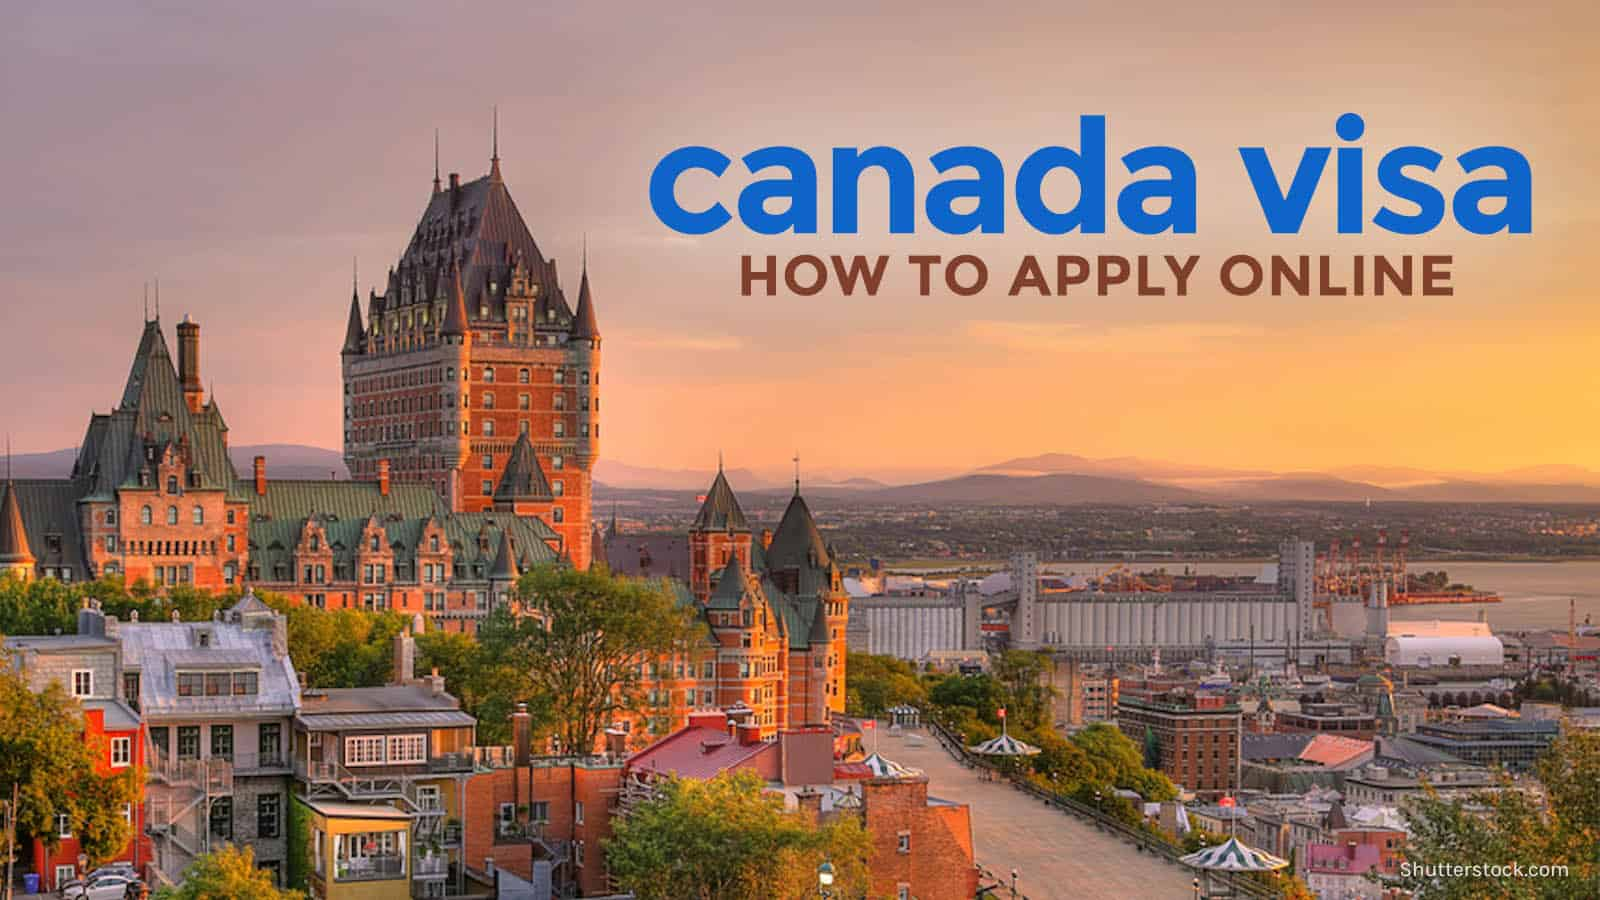 Canada Travel Agency Philippines